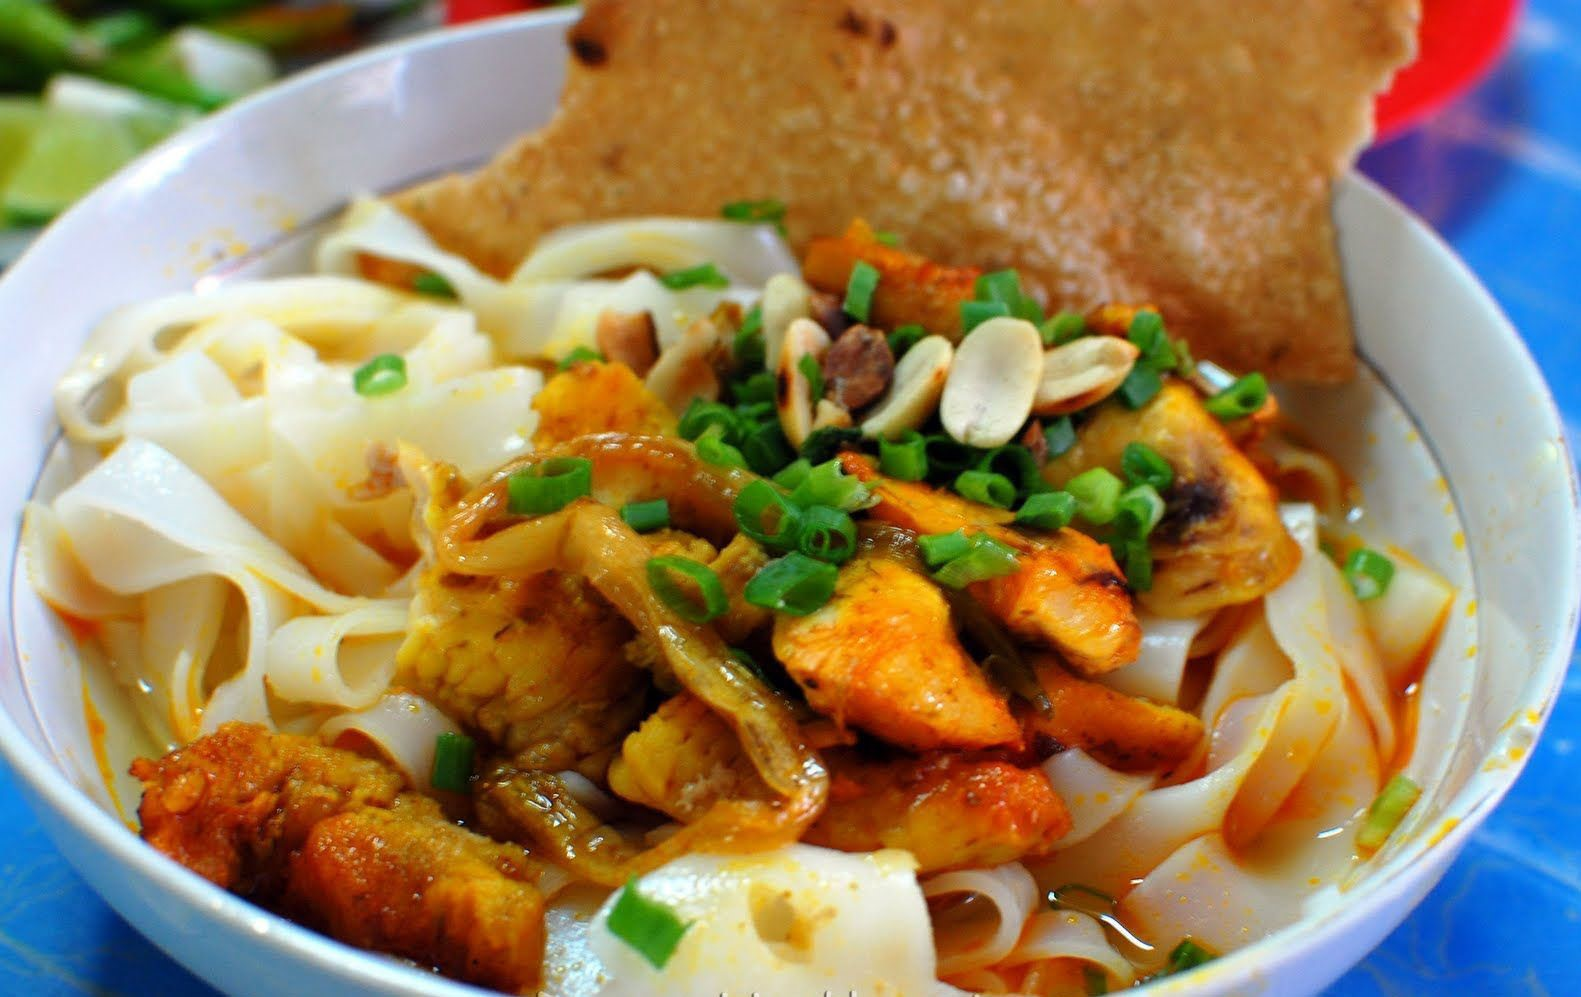 mouthwatering-mi-quang-quang-noodles-in-hoi-an-has-quite-strong-flavour-saigon-riders